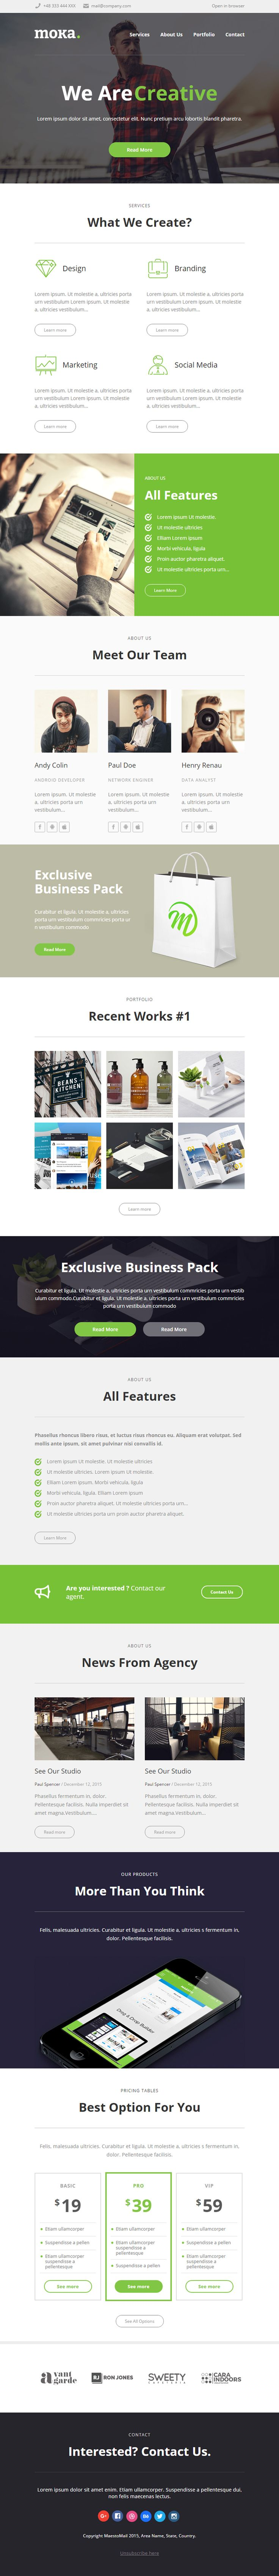 1000 ideas about free html email templates on pinterest html email templates email